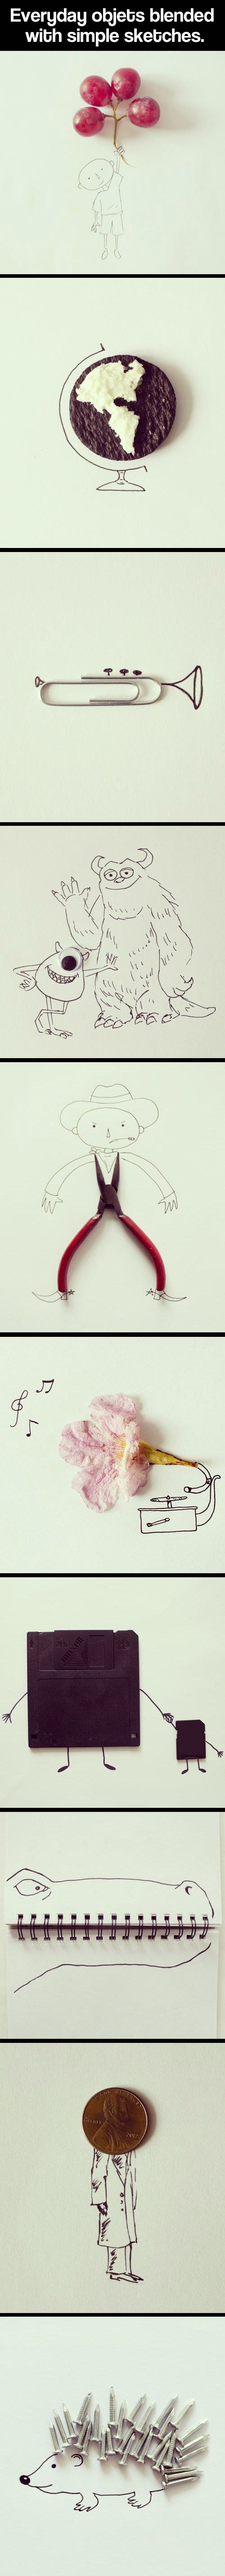 Everyday objects blended with drawing